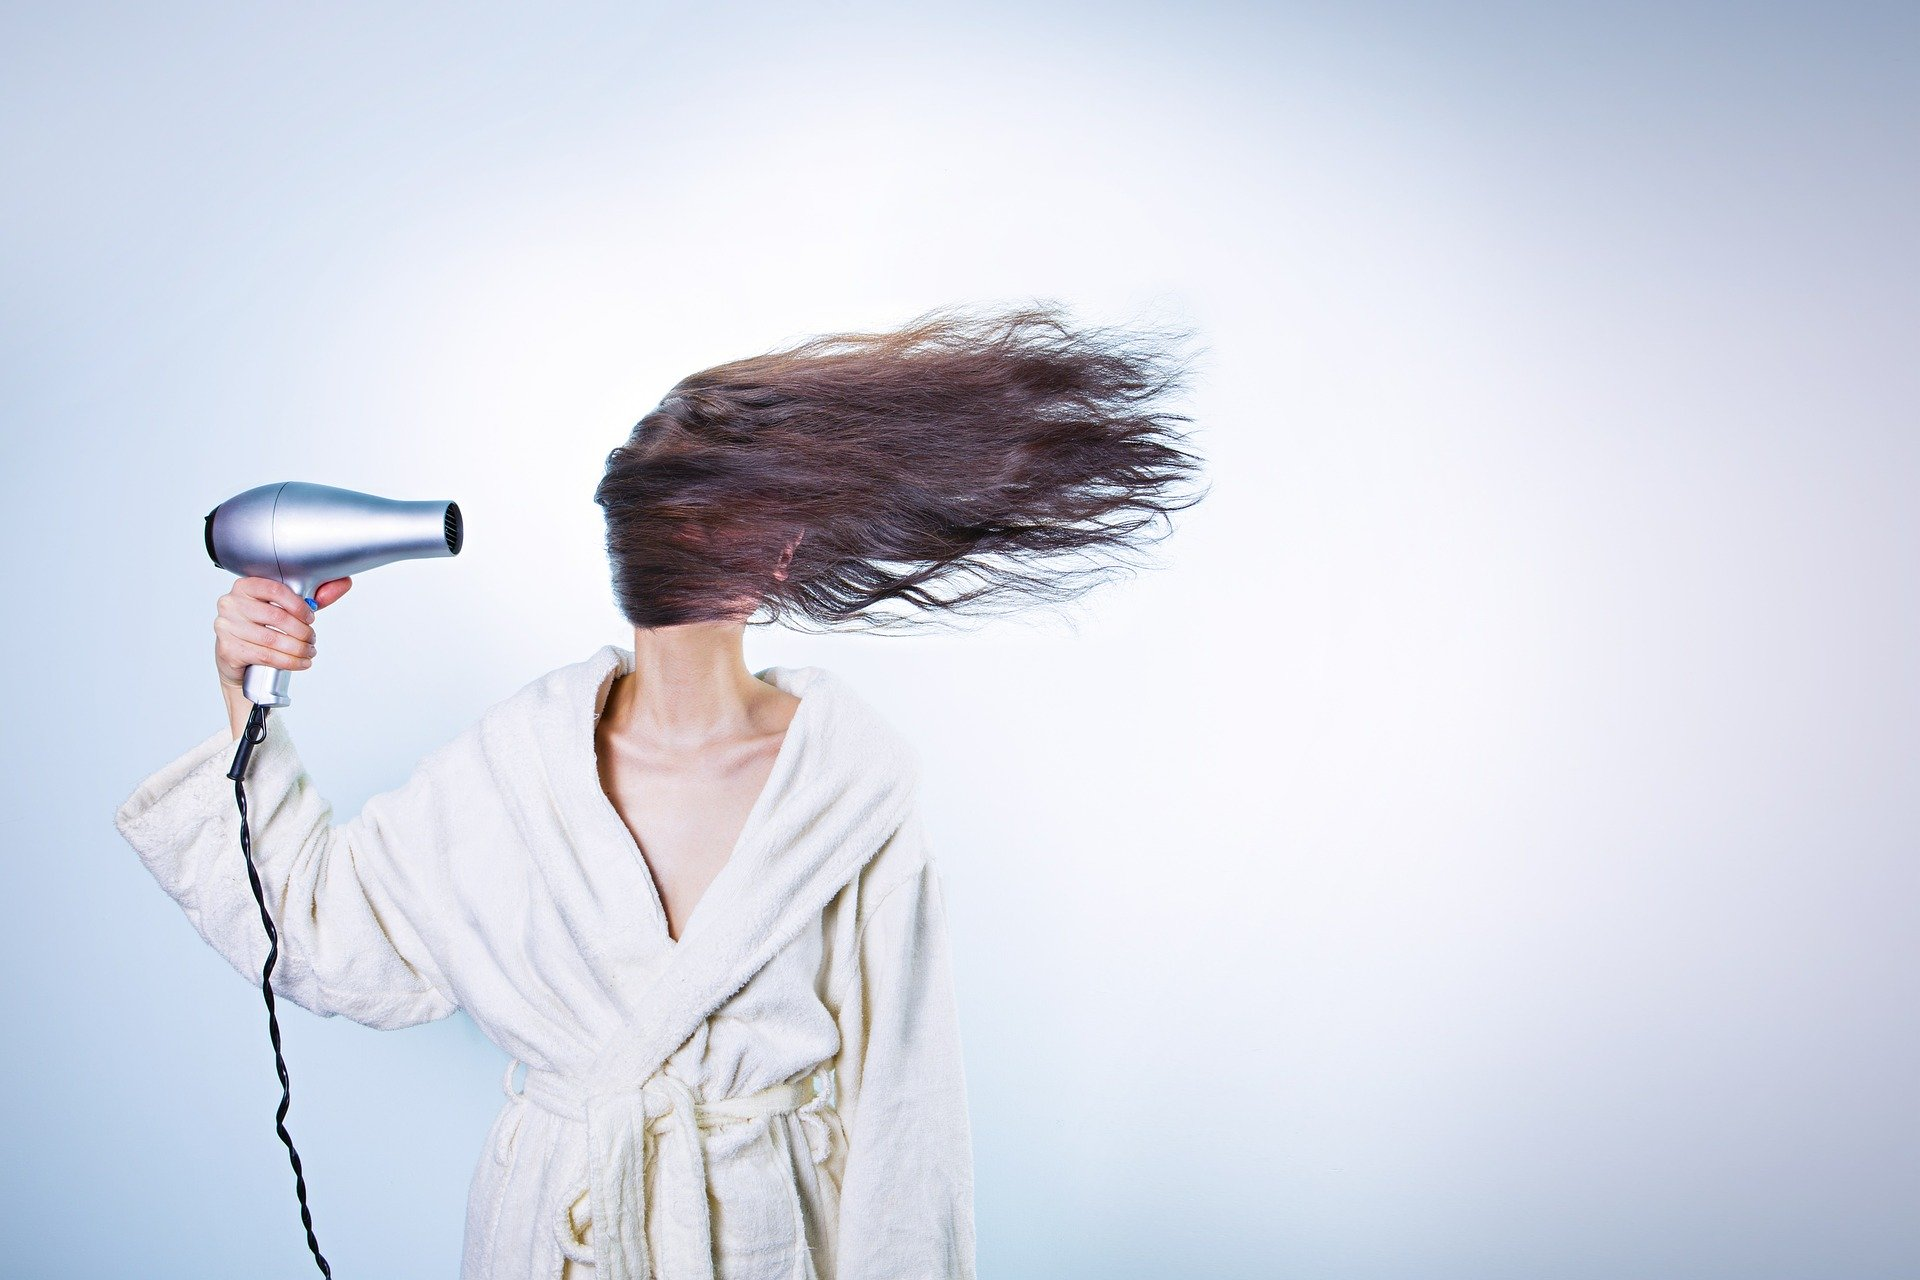 If you're fond of curlers, straighteners, or blow-dryers, you might be wondering how you can bypass the virtually unavoidable hair damage that comes along with using those devices.